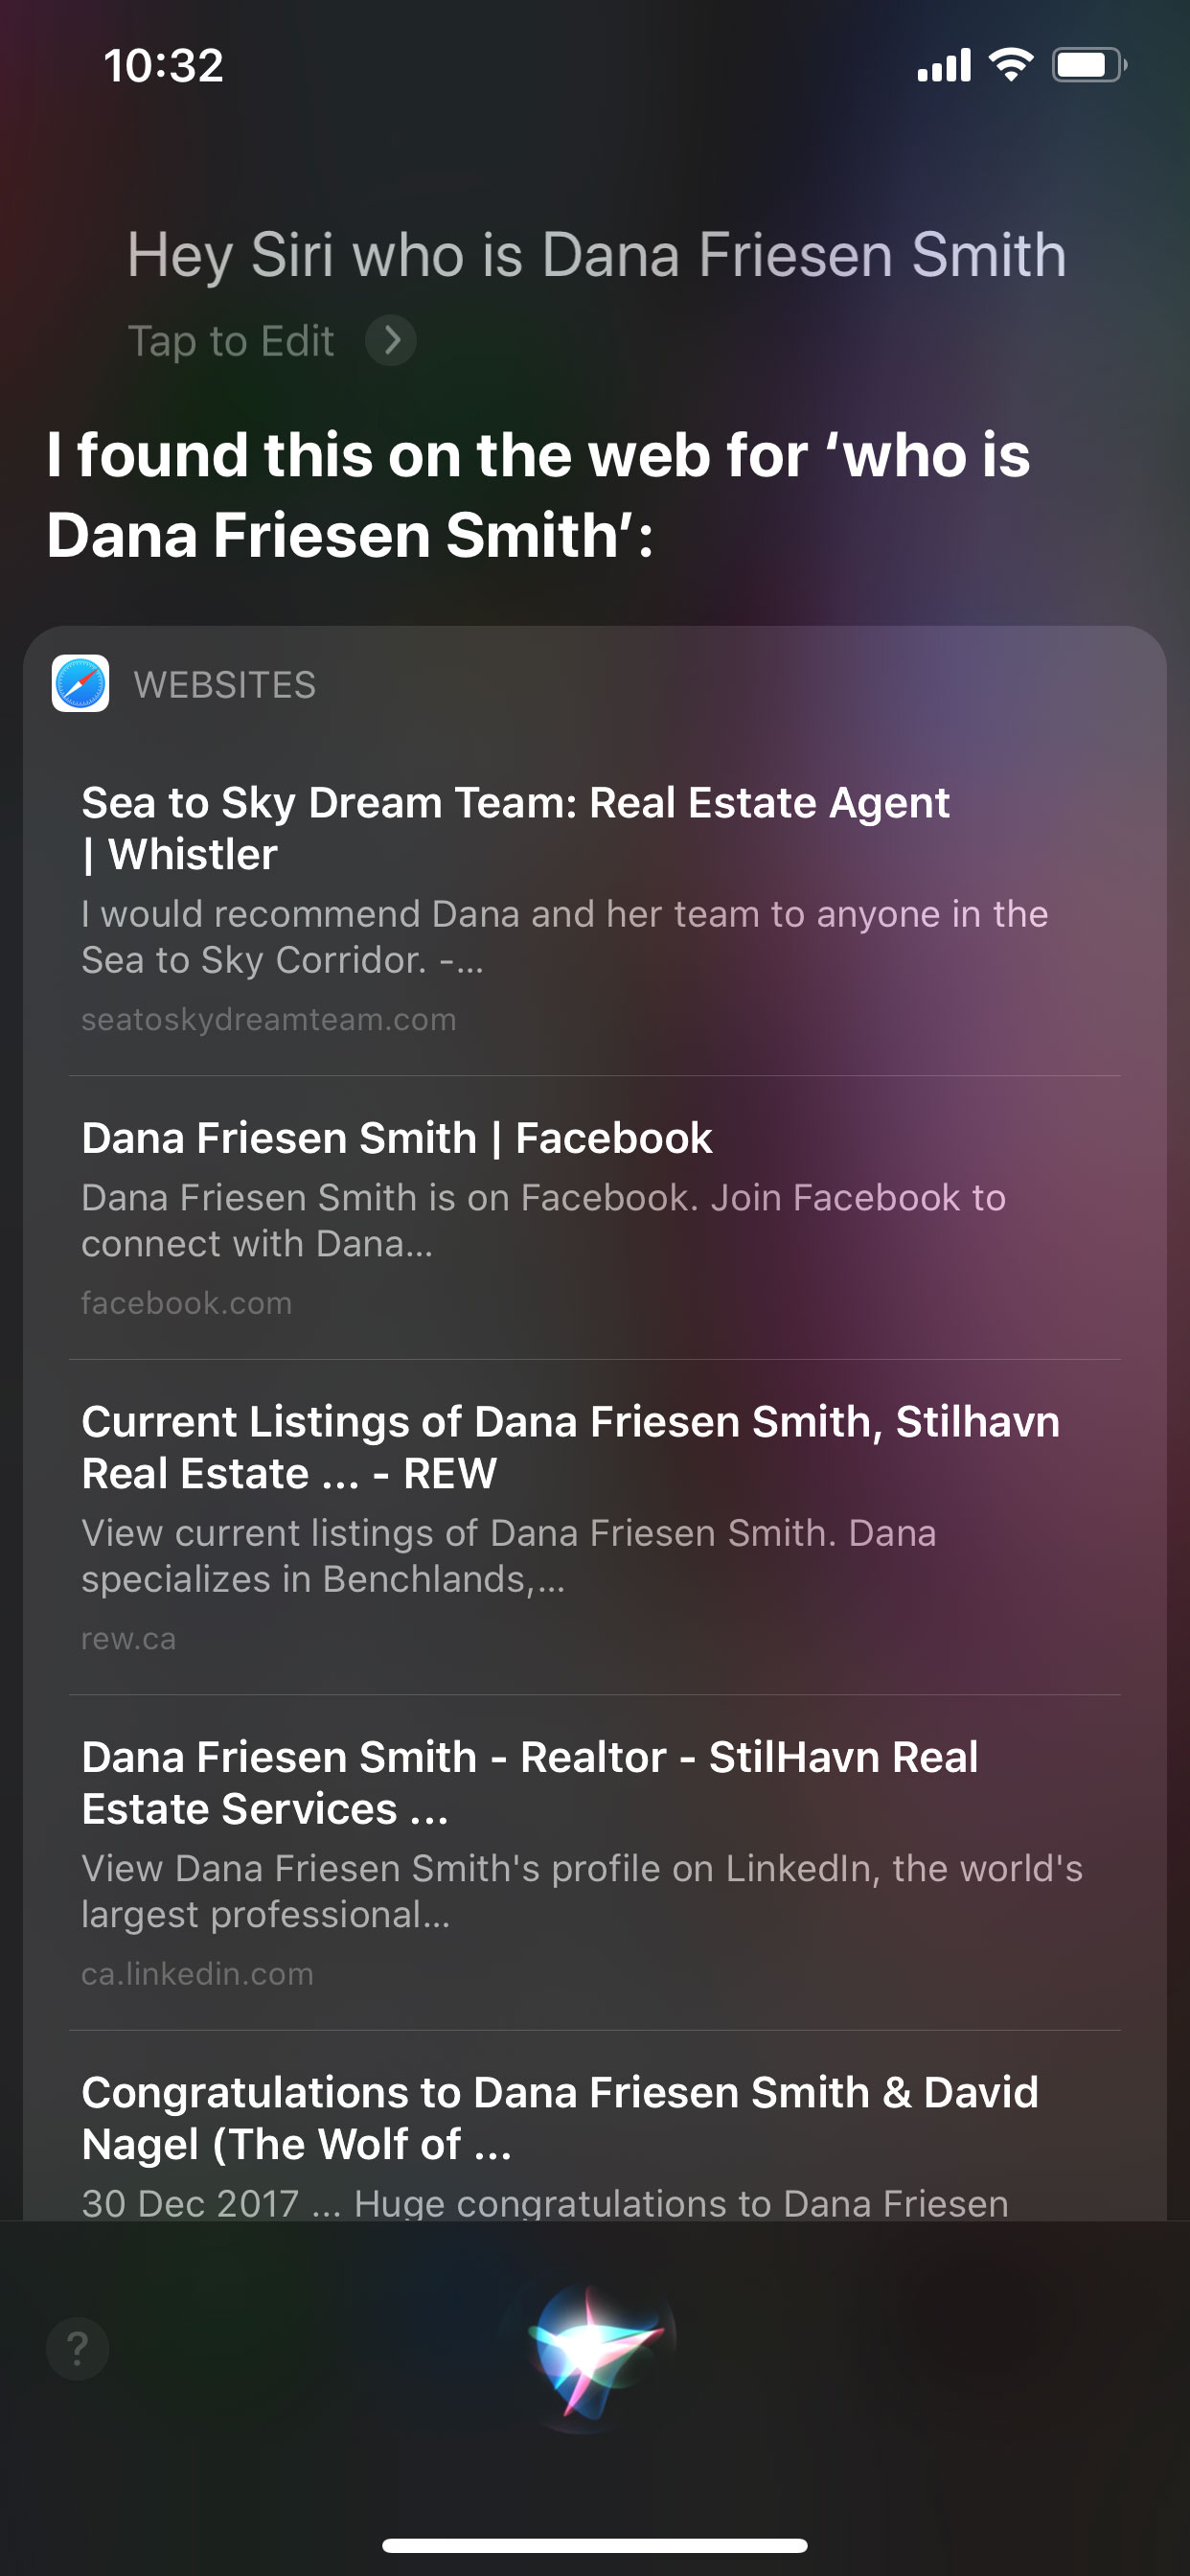 Voice Search - Who is Realtor Dana Friesen Smith